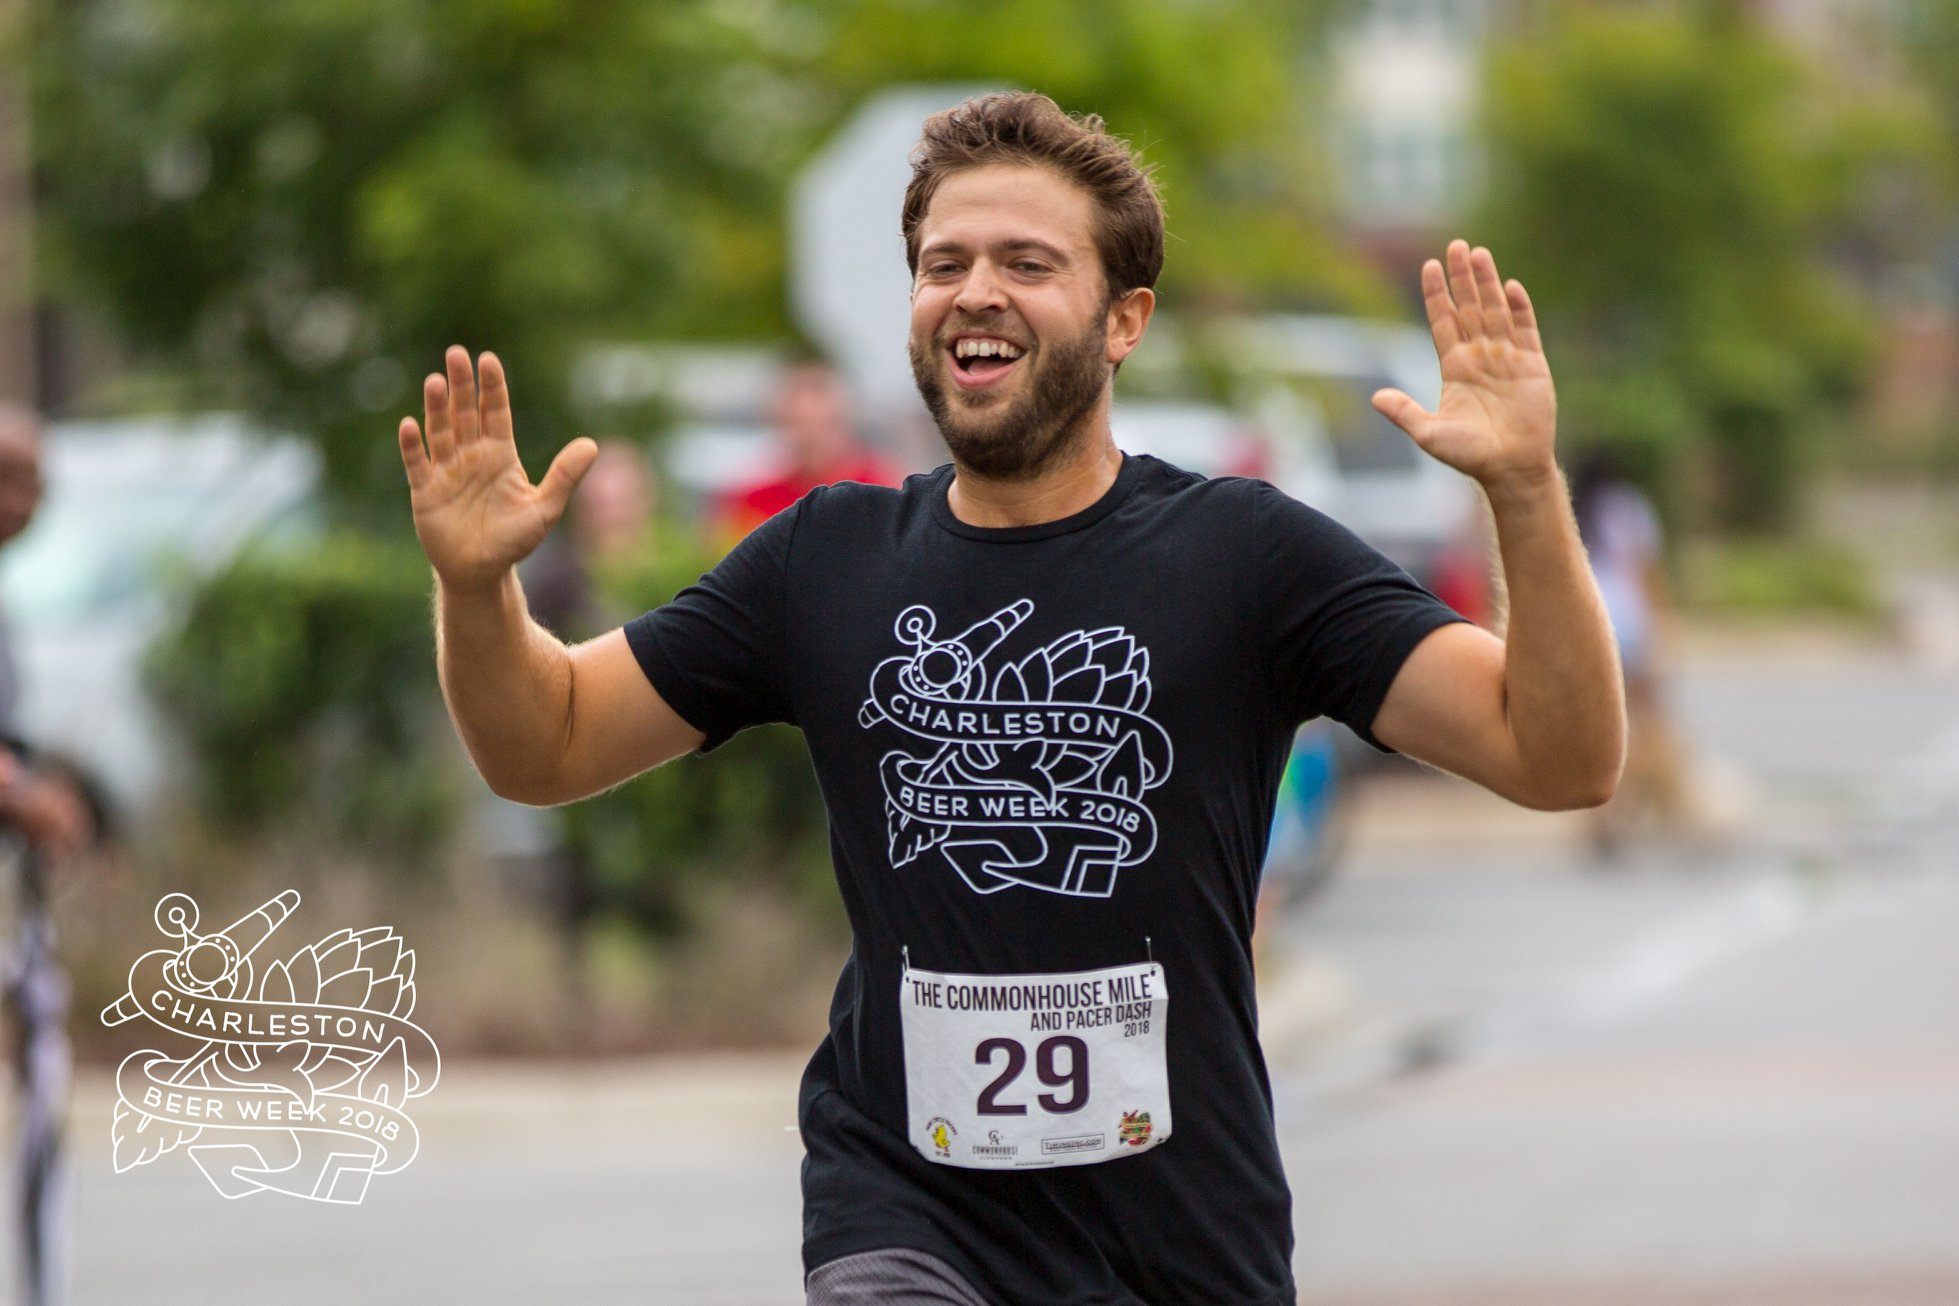 2018 Charleston Beer Week Commonhouse Mile and Pacer Dash Run